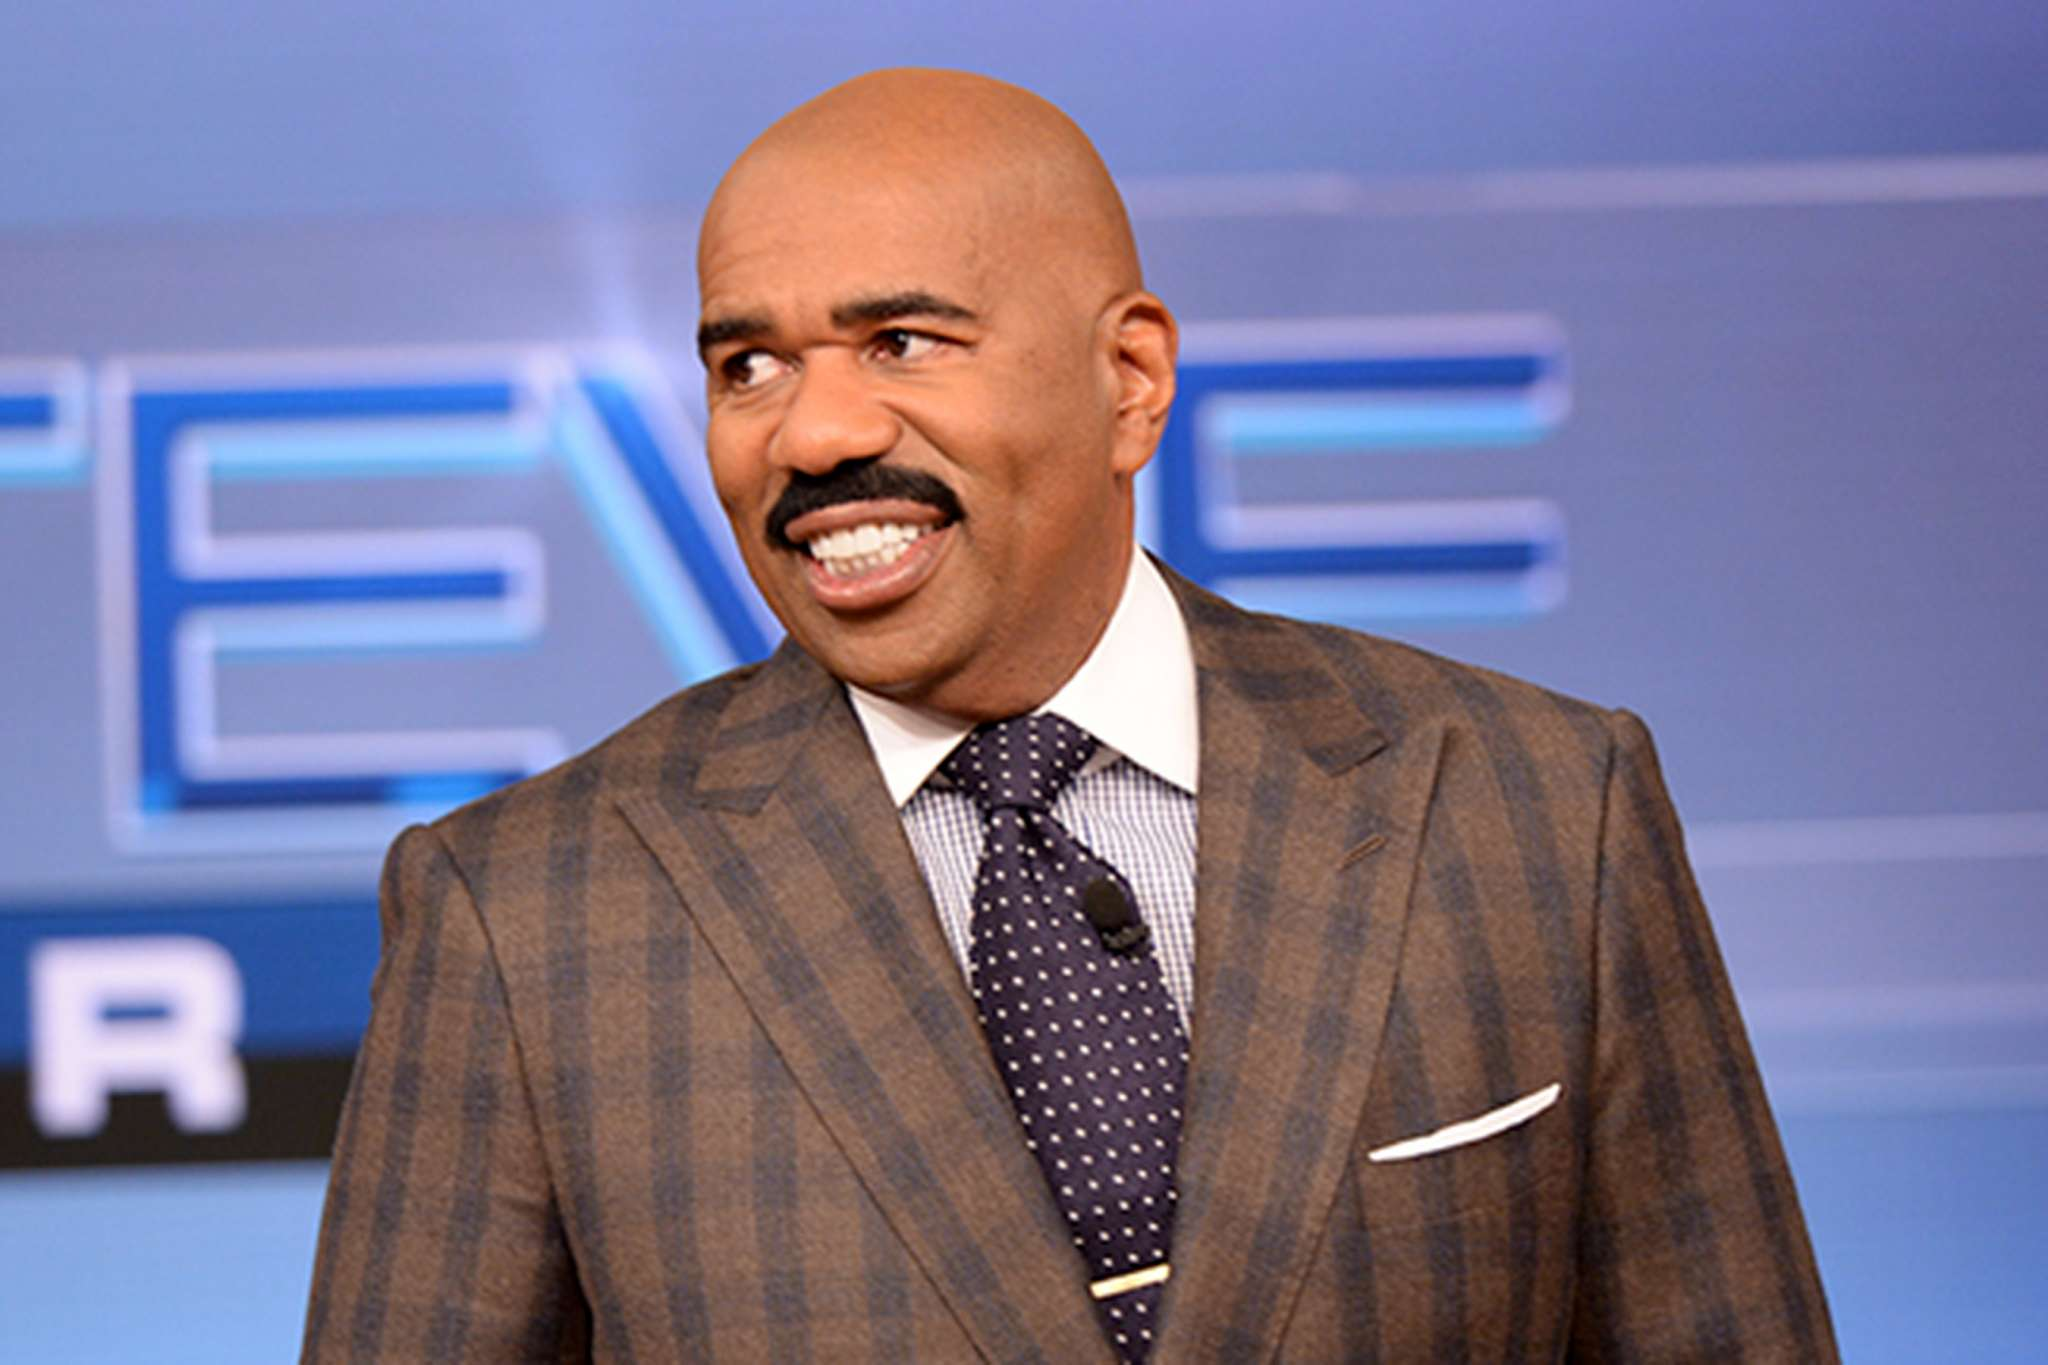 steve-harvey-booted-from-little-big-shots-livid-comedian-replaced-by-melissa-mccarthy-and-fans-say-its-karma